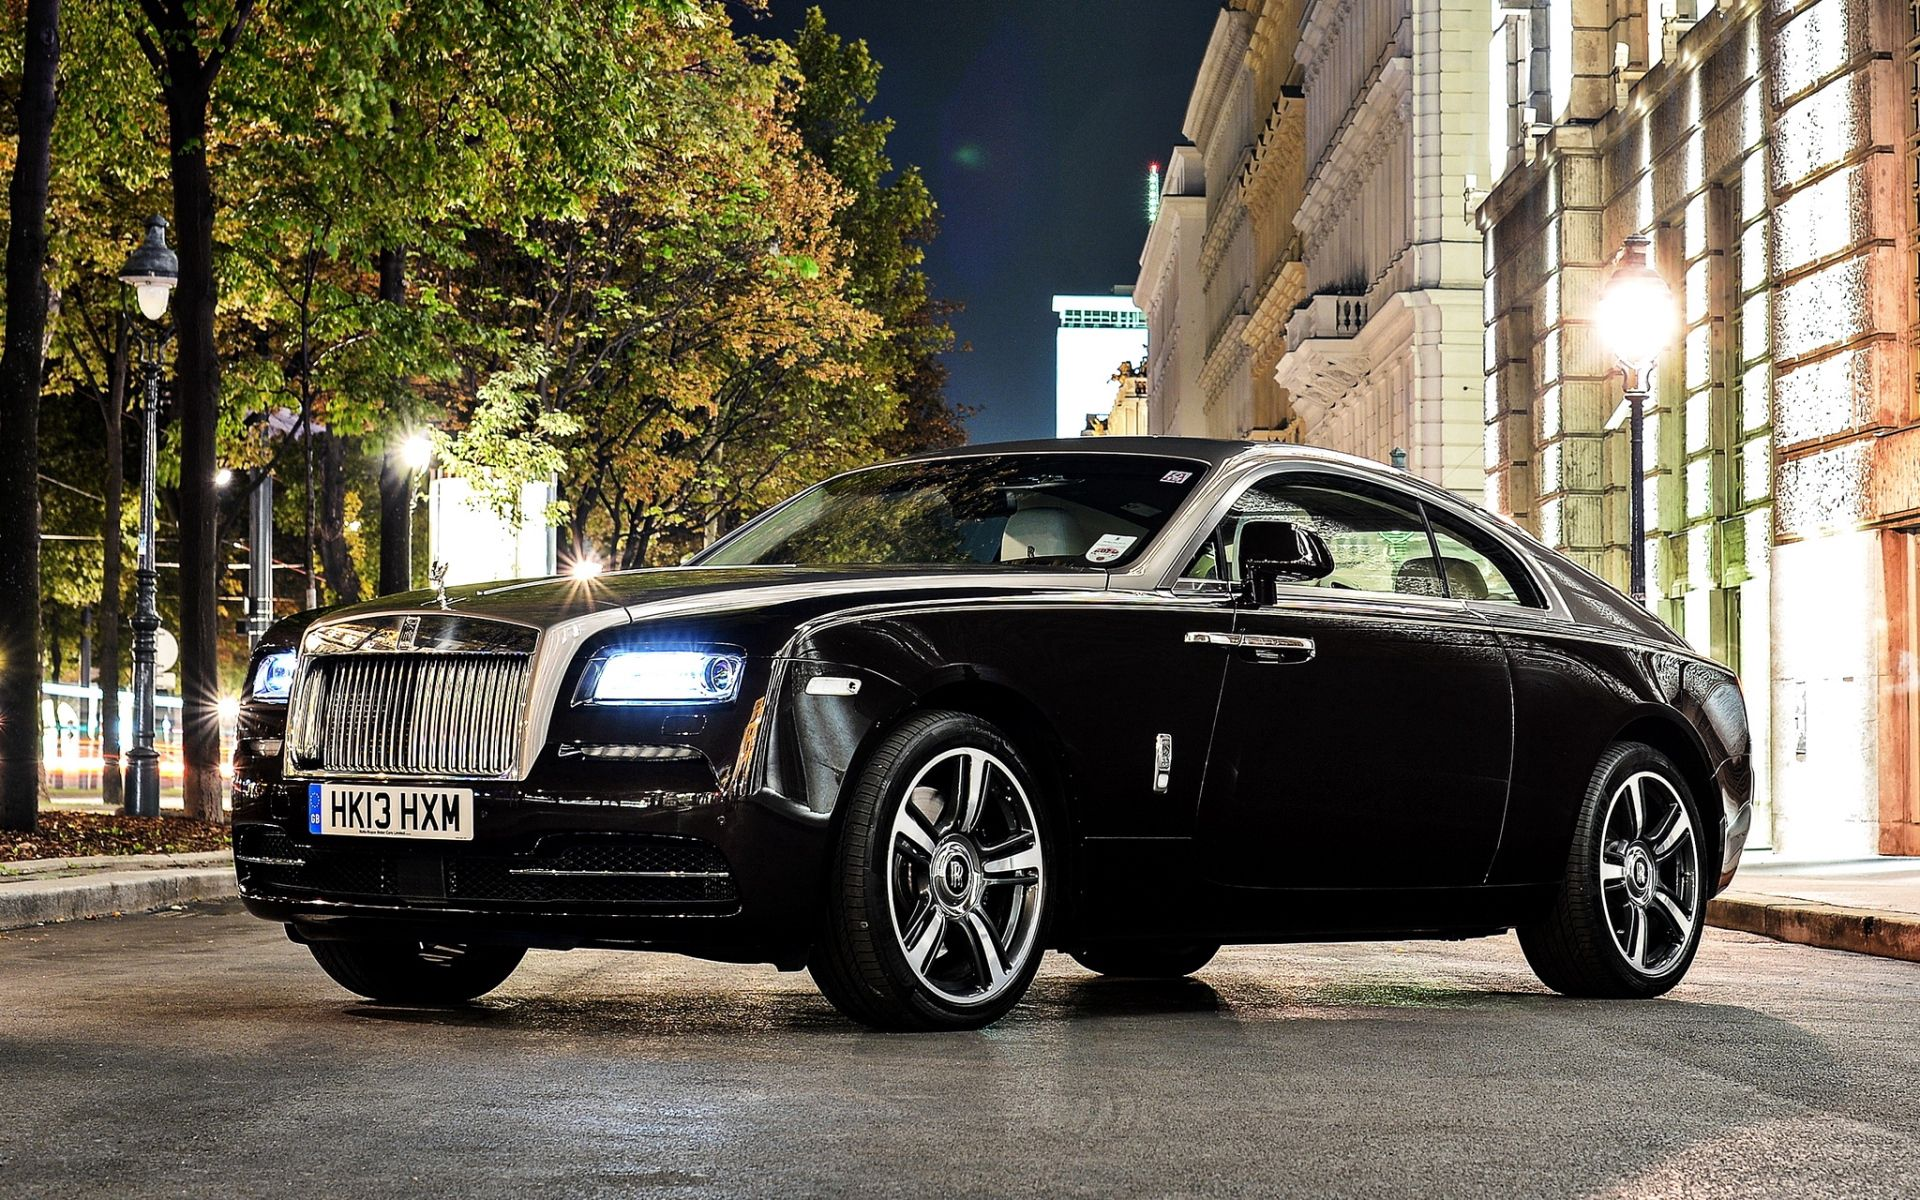 133172 Screensavers and Wallpapers Side View for phone. Download Cars, Rolls-Royce, Shine, Brilliance, Side View, Wraith, Rolls-Royce Wraith pictures for free